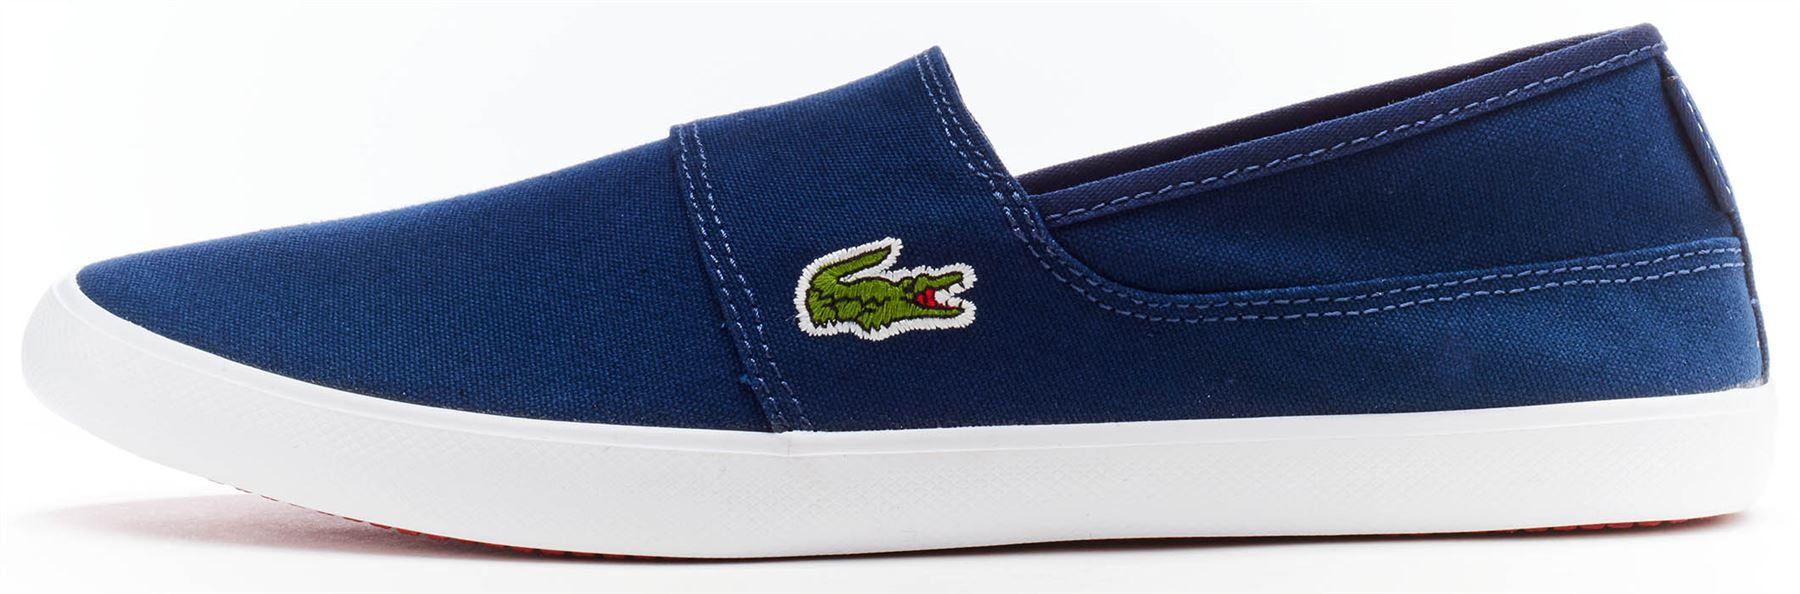 ae2fb08538af8b Lacoste Marice BL 2 CAM Lace Canvas Slip Ons Trainers in Wide Range of  Colours